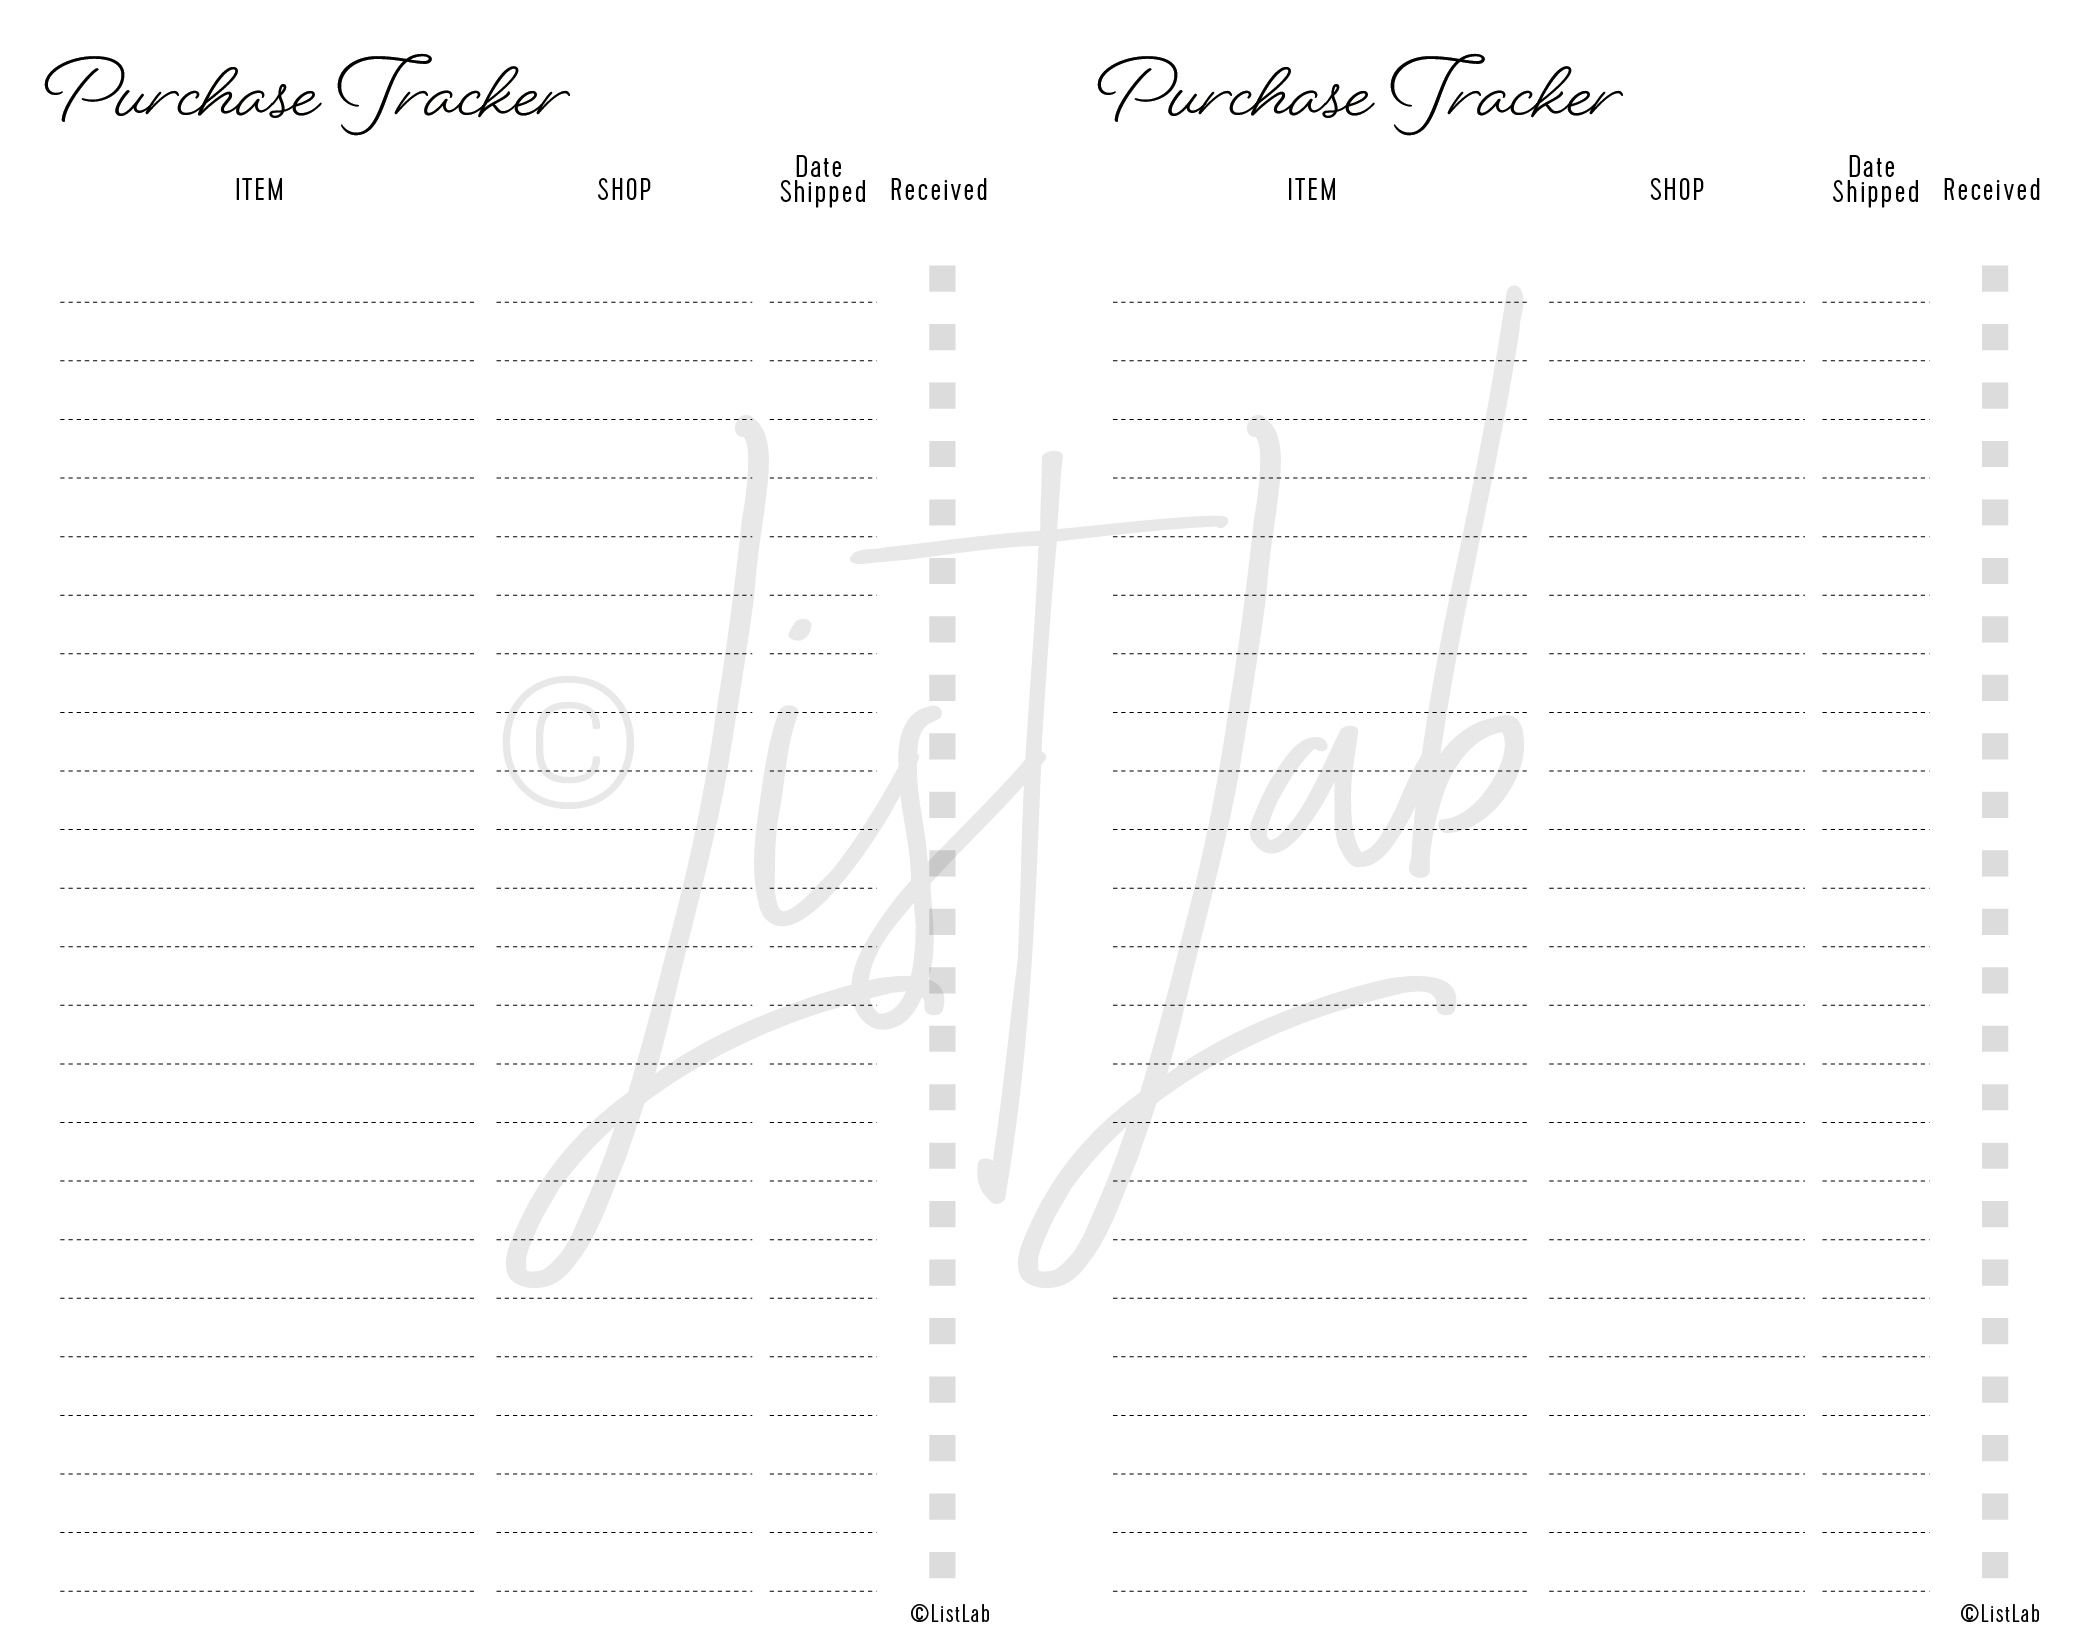 PURCHASE TRACKER